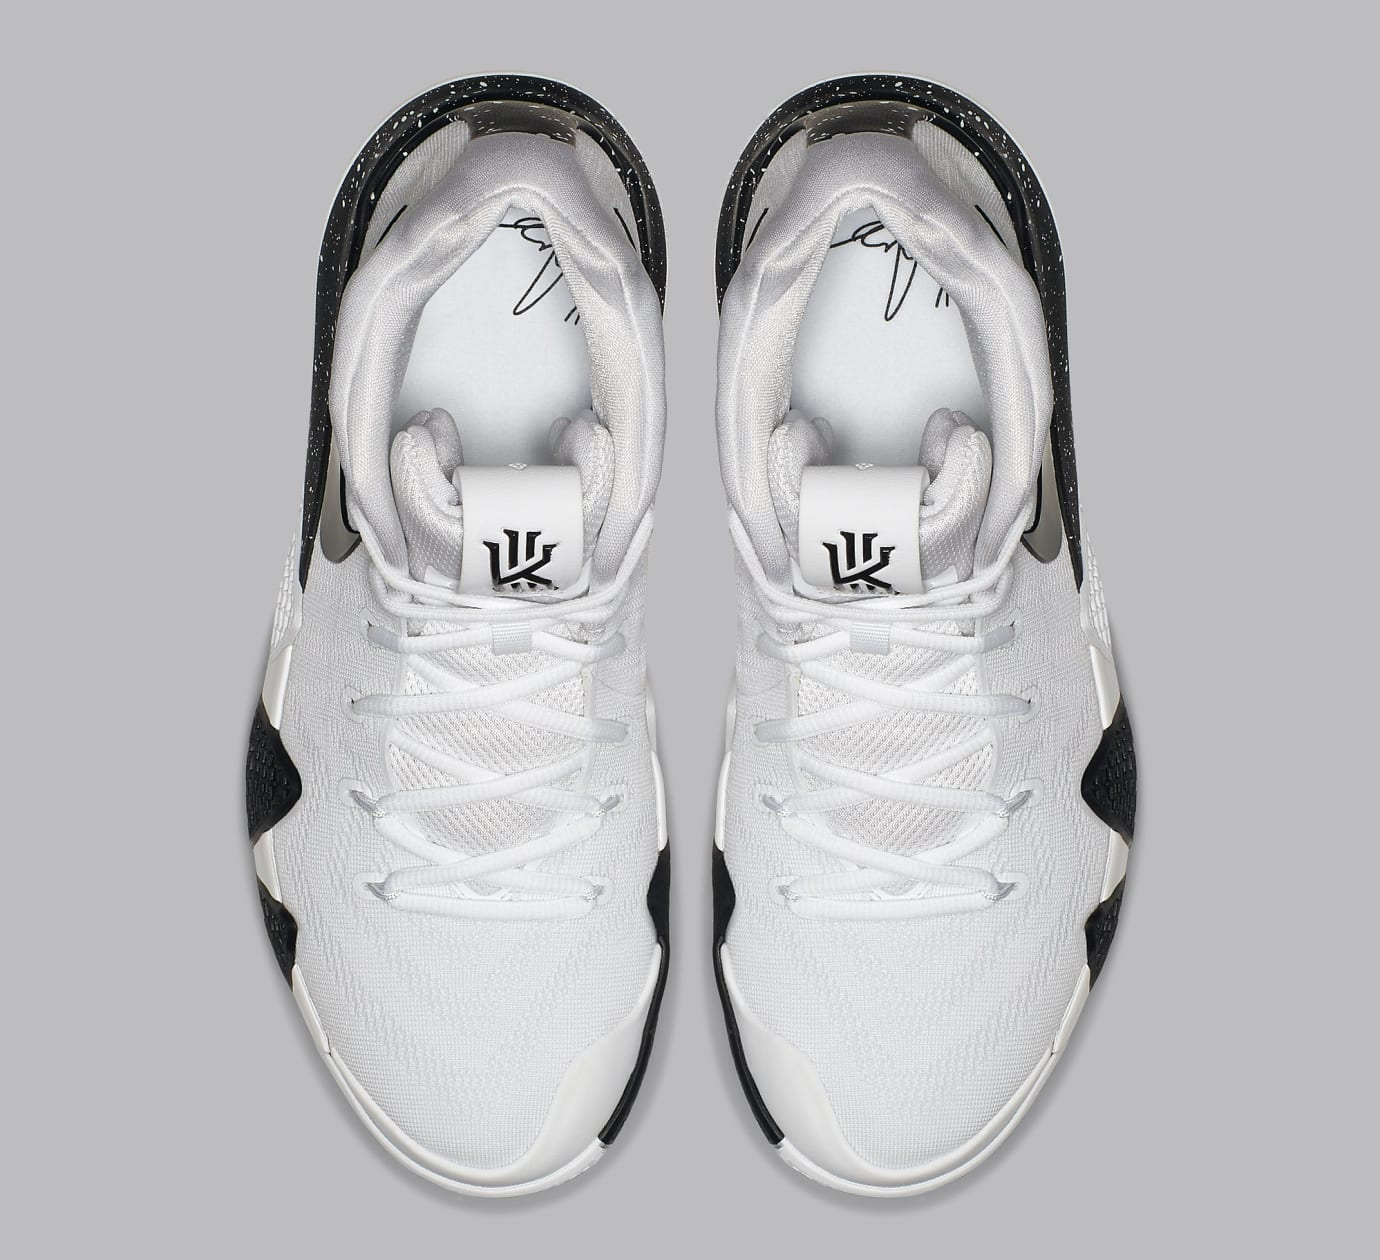 big sale 0cafc 89b4a Nike Kyrie 4 White Black Release Date AV2296-100 | Sole ...